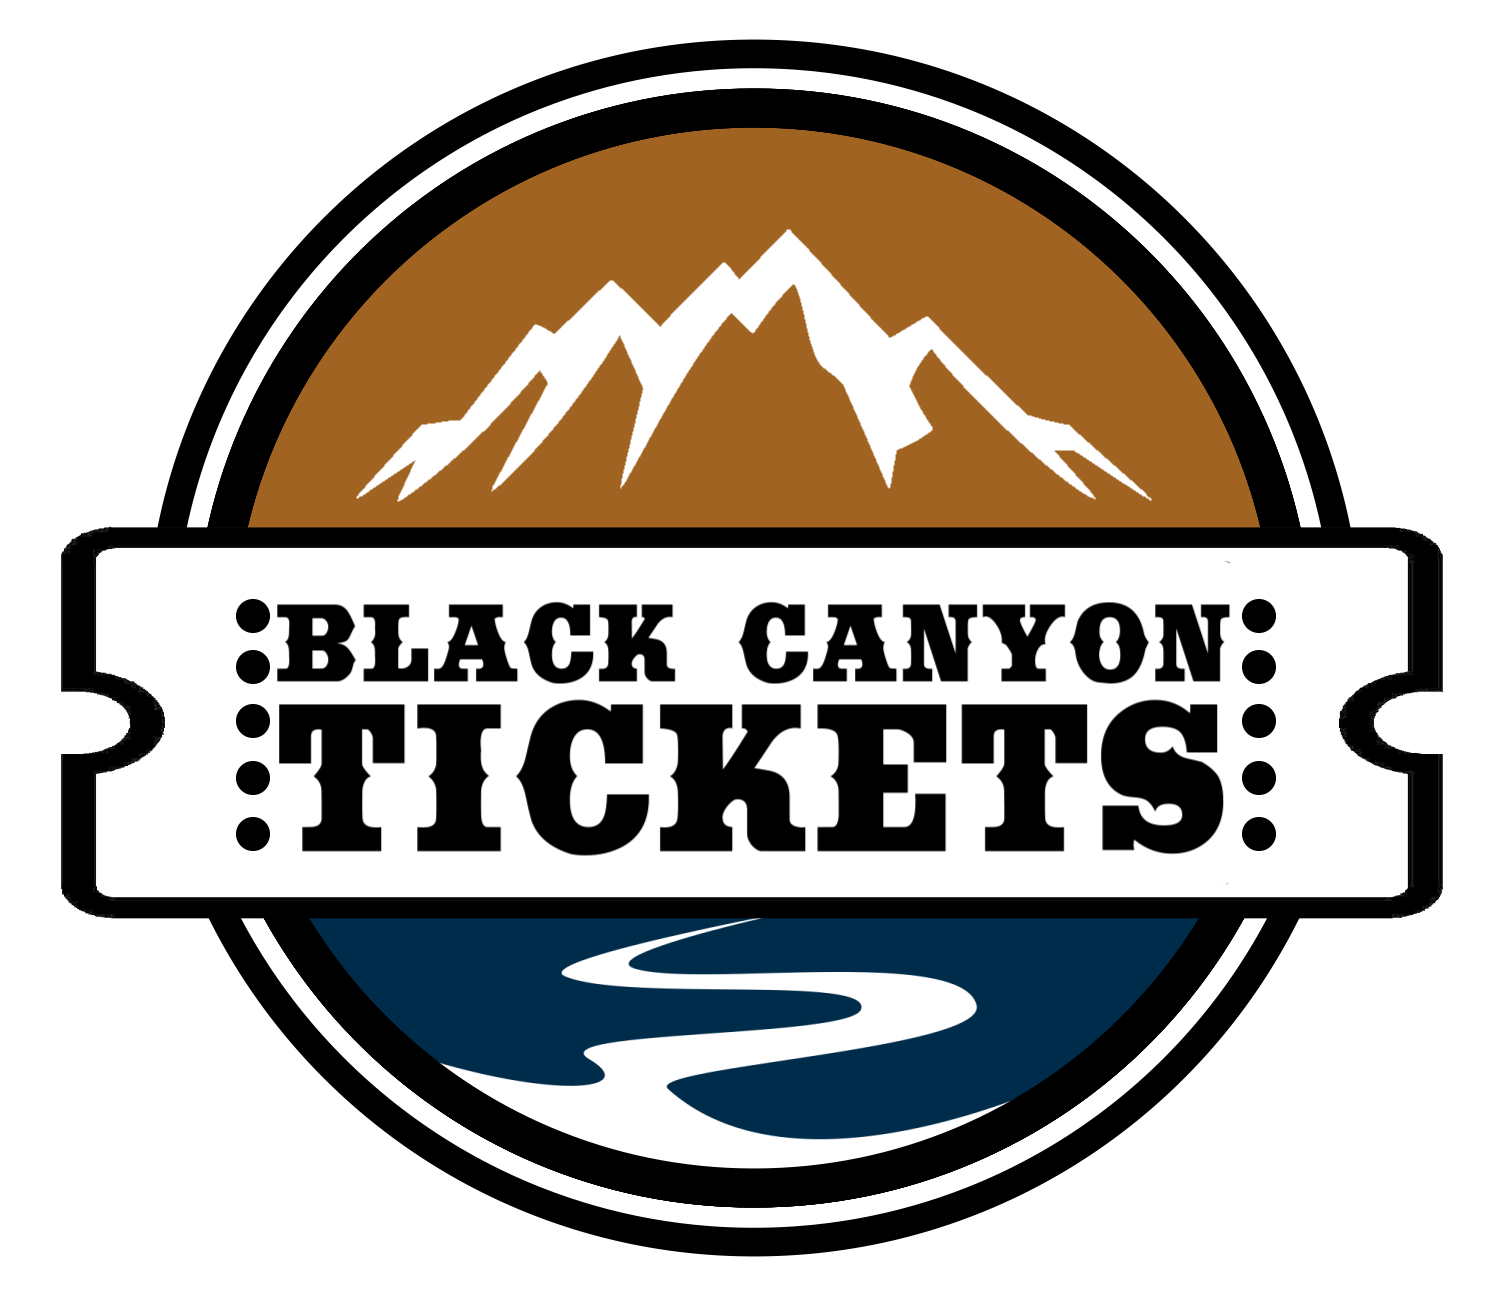 Wilson Peak Sponsorship - Black Canyon Tickets